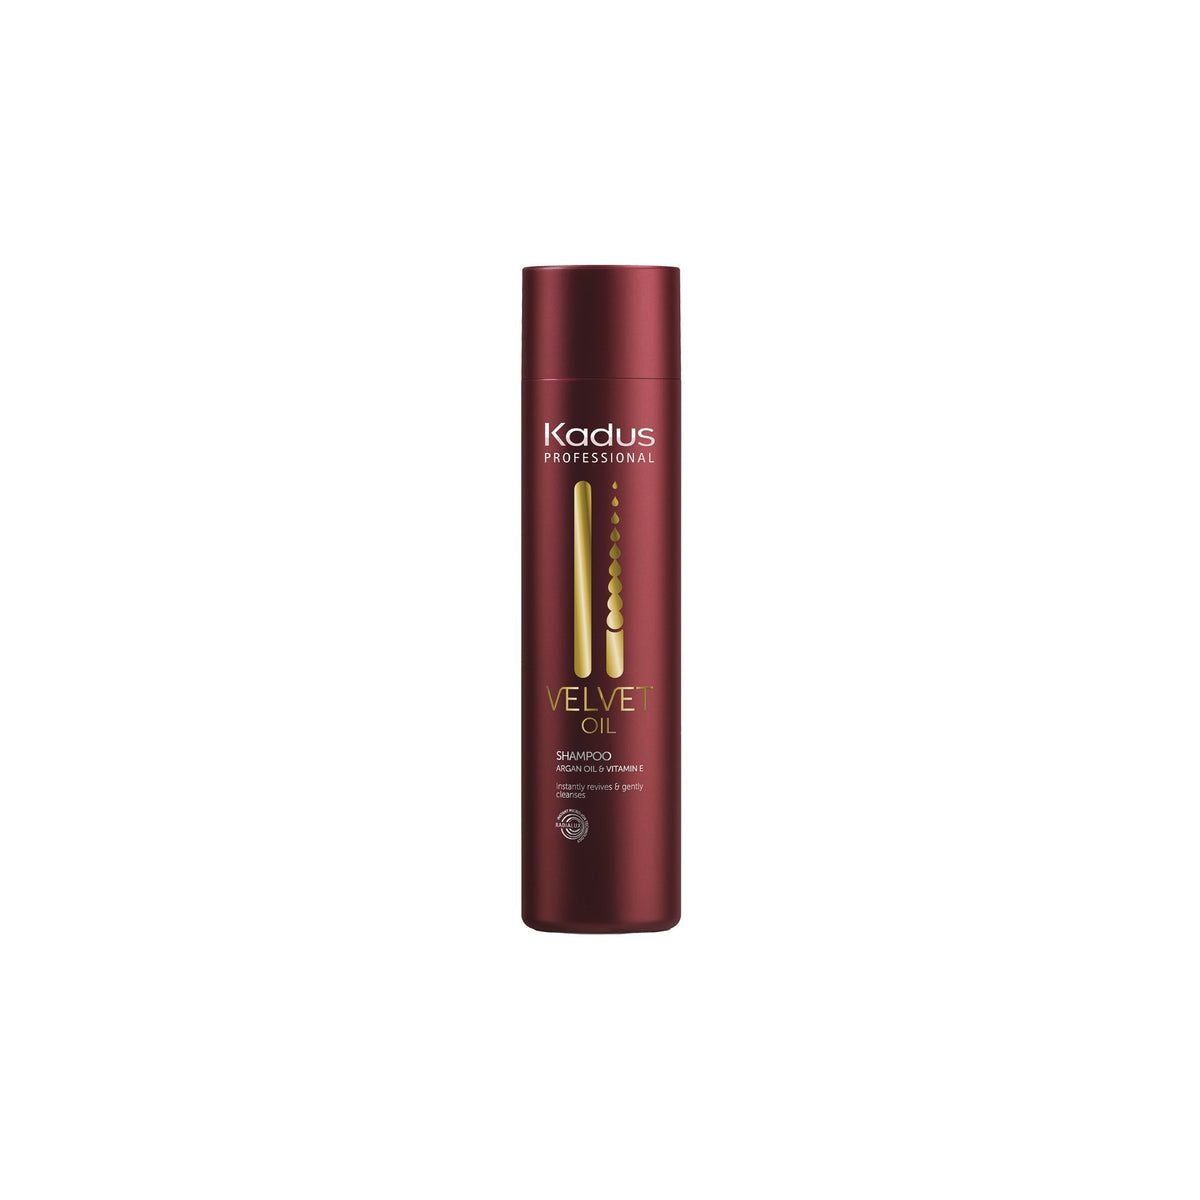 Kadus Velvet Oil Shampoo 250ml